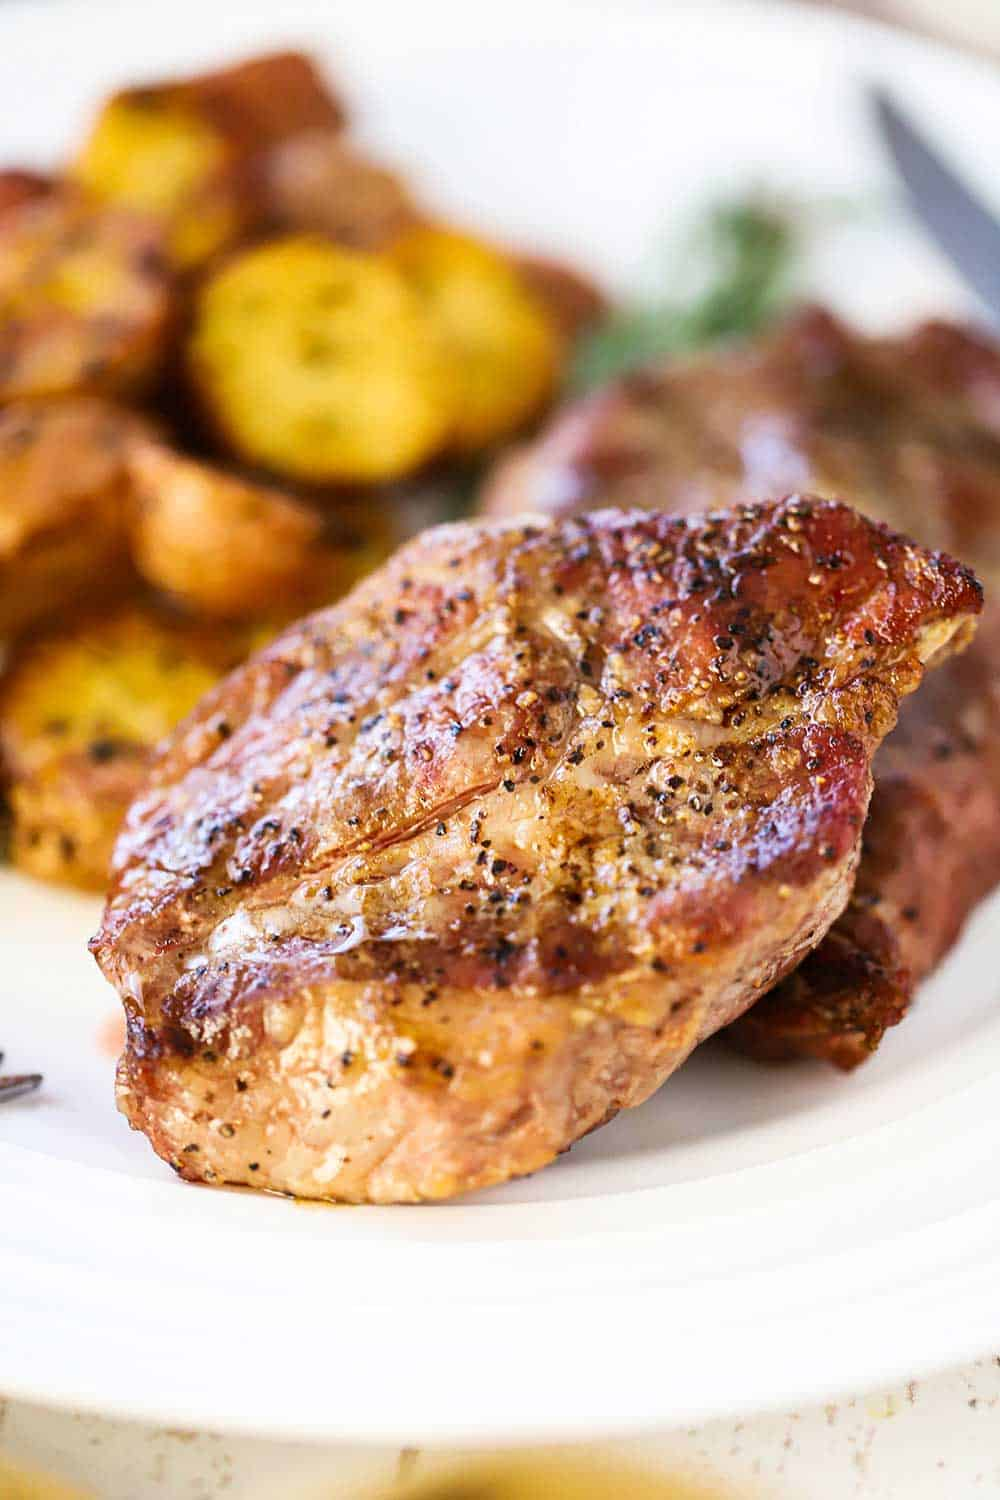 A close up view of a grilled Delmonico pork steak on a white plate next to roasted potatoes.